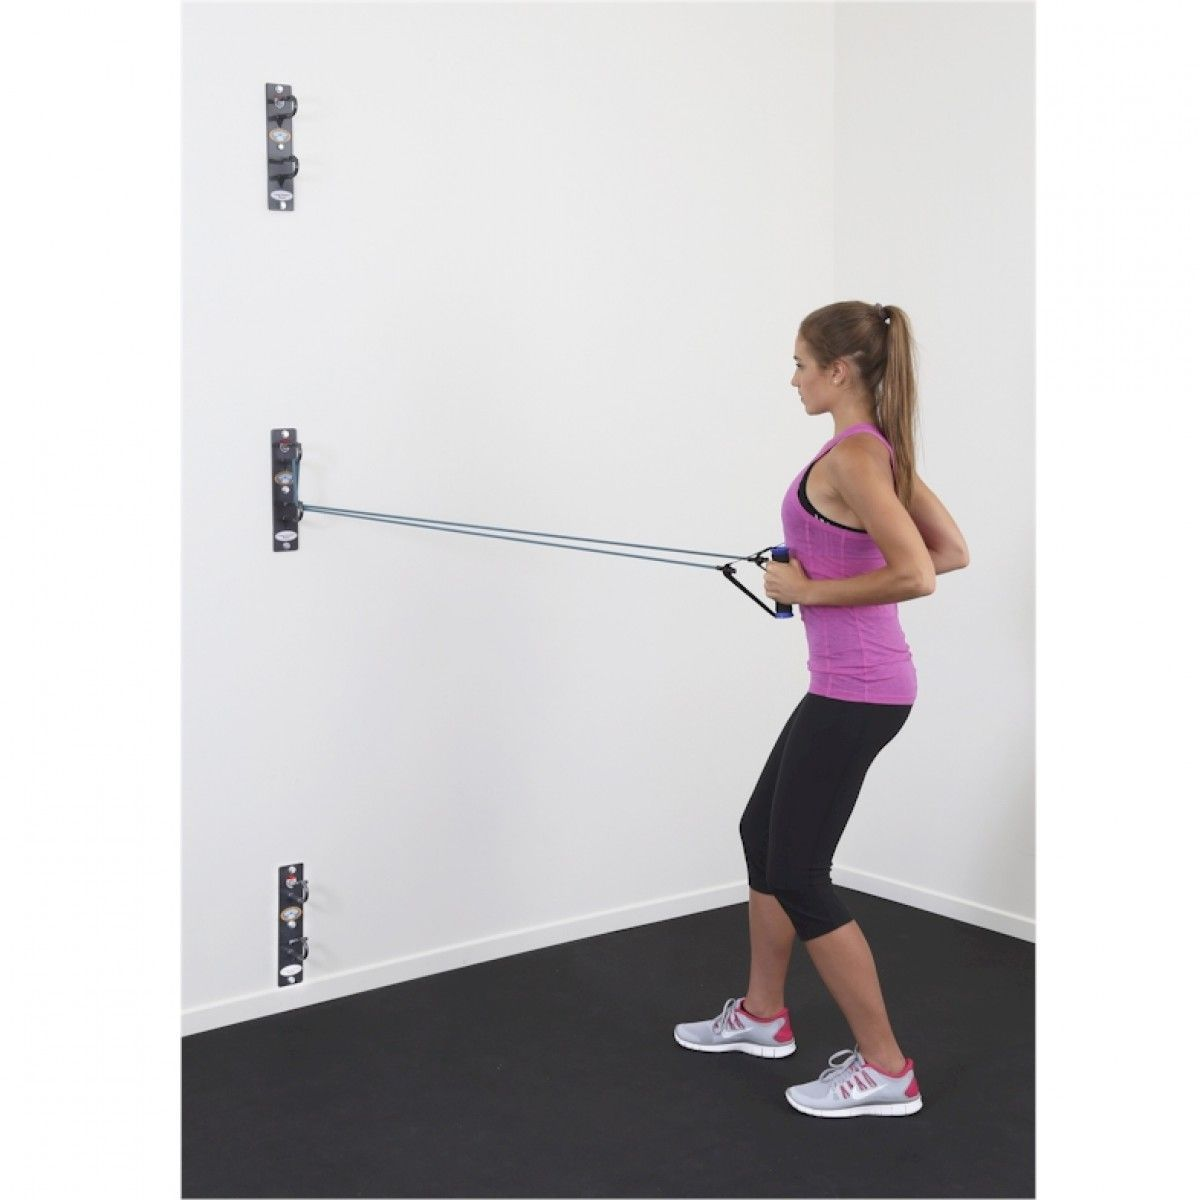 Workoutz Anchor Gym For Resistance Bands#anchor #bands #gym #resistance #workoutz